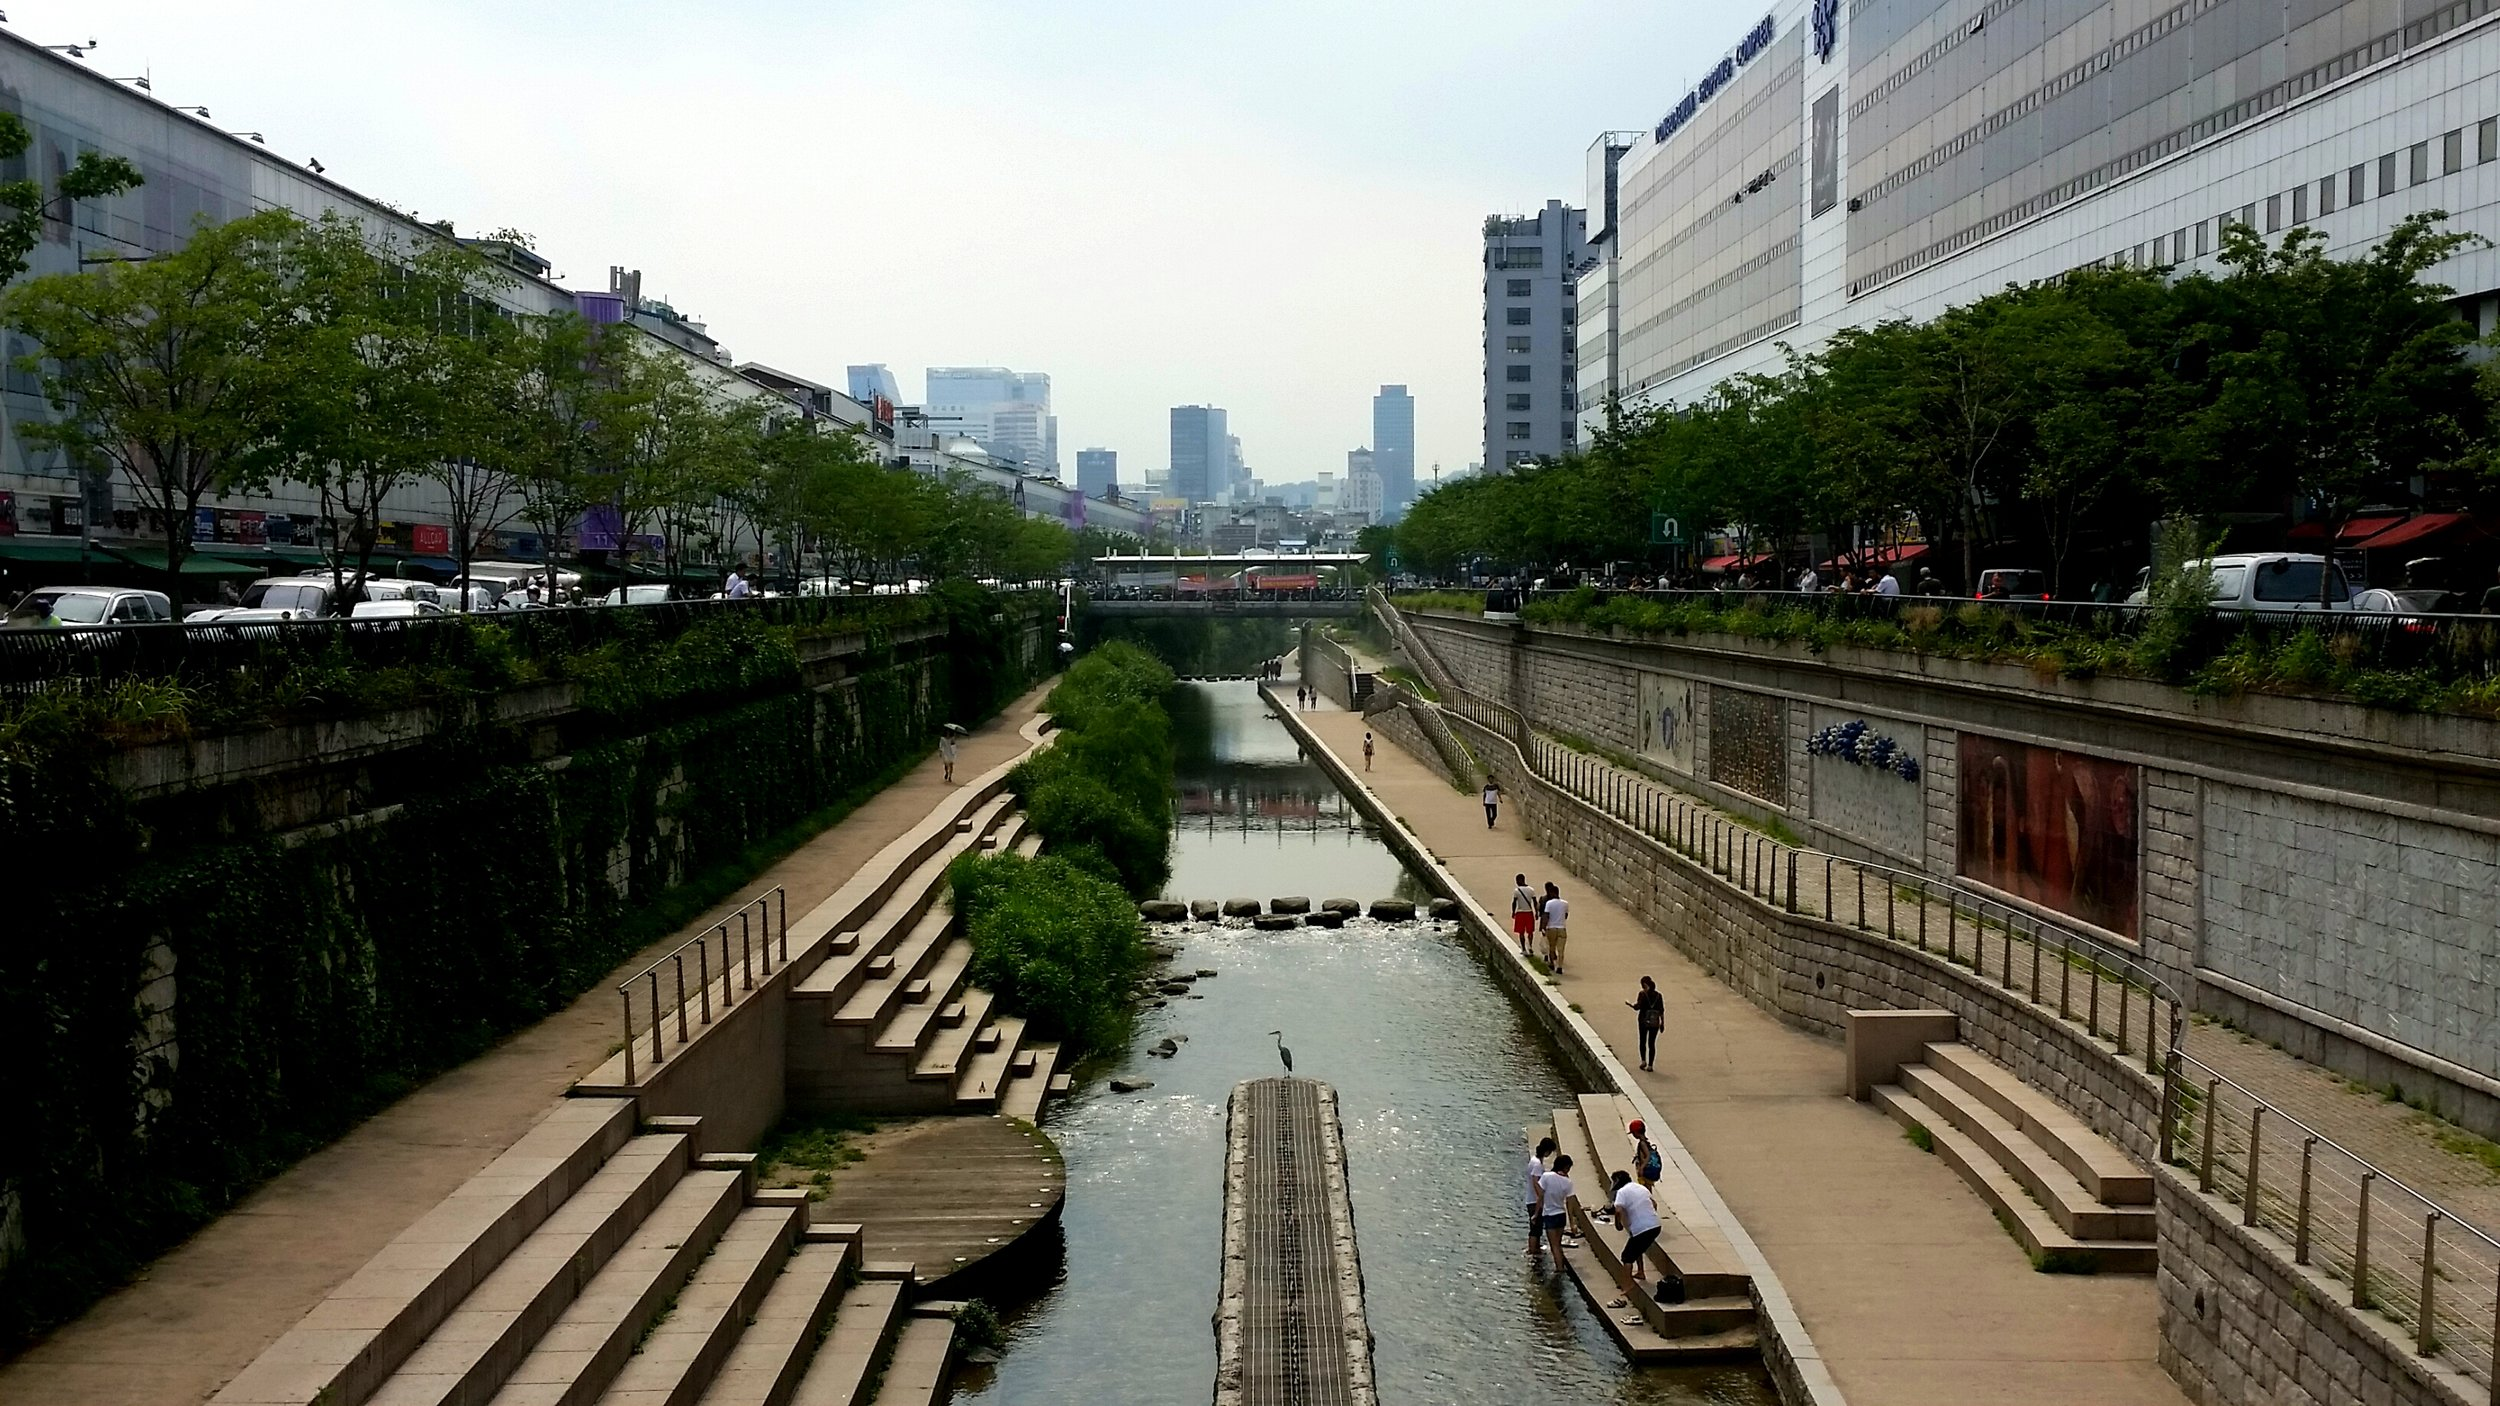 Cheonggyecheon sunken park. A bit like London's Regent's Canal, but with less discarded needles and floating plastic waste.